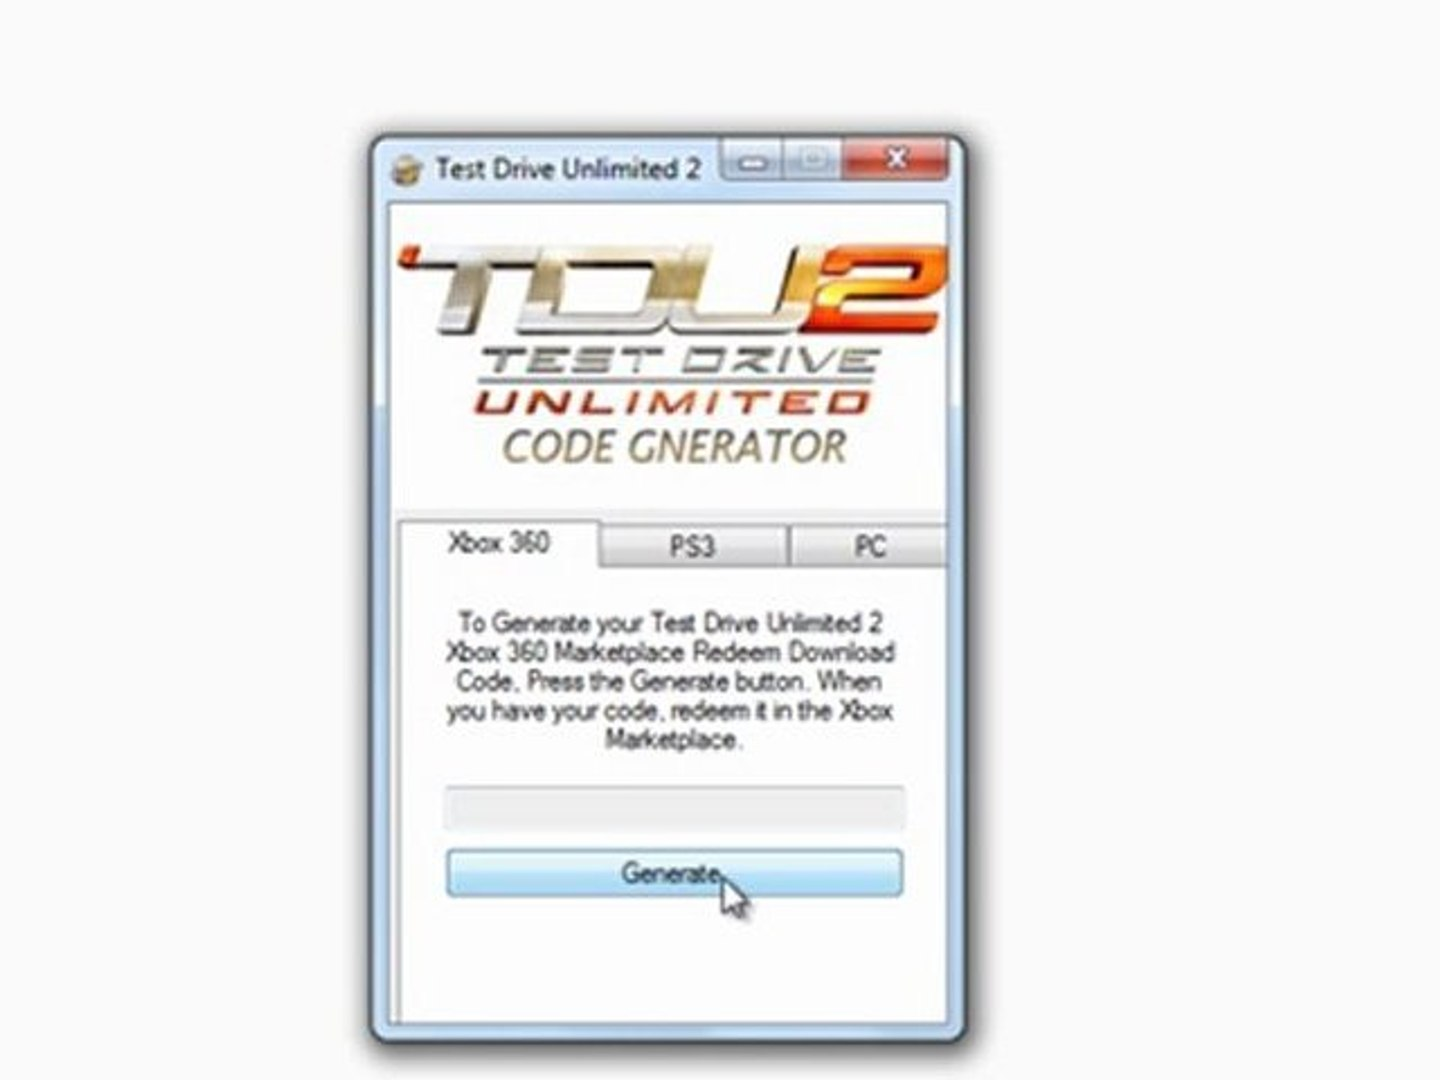 test drive unlimited 2 unlock code and serial number